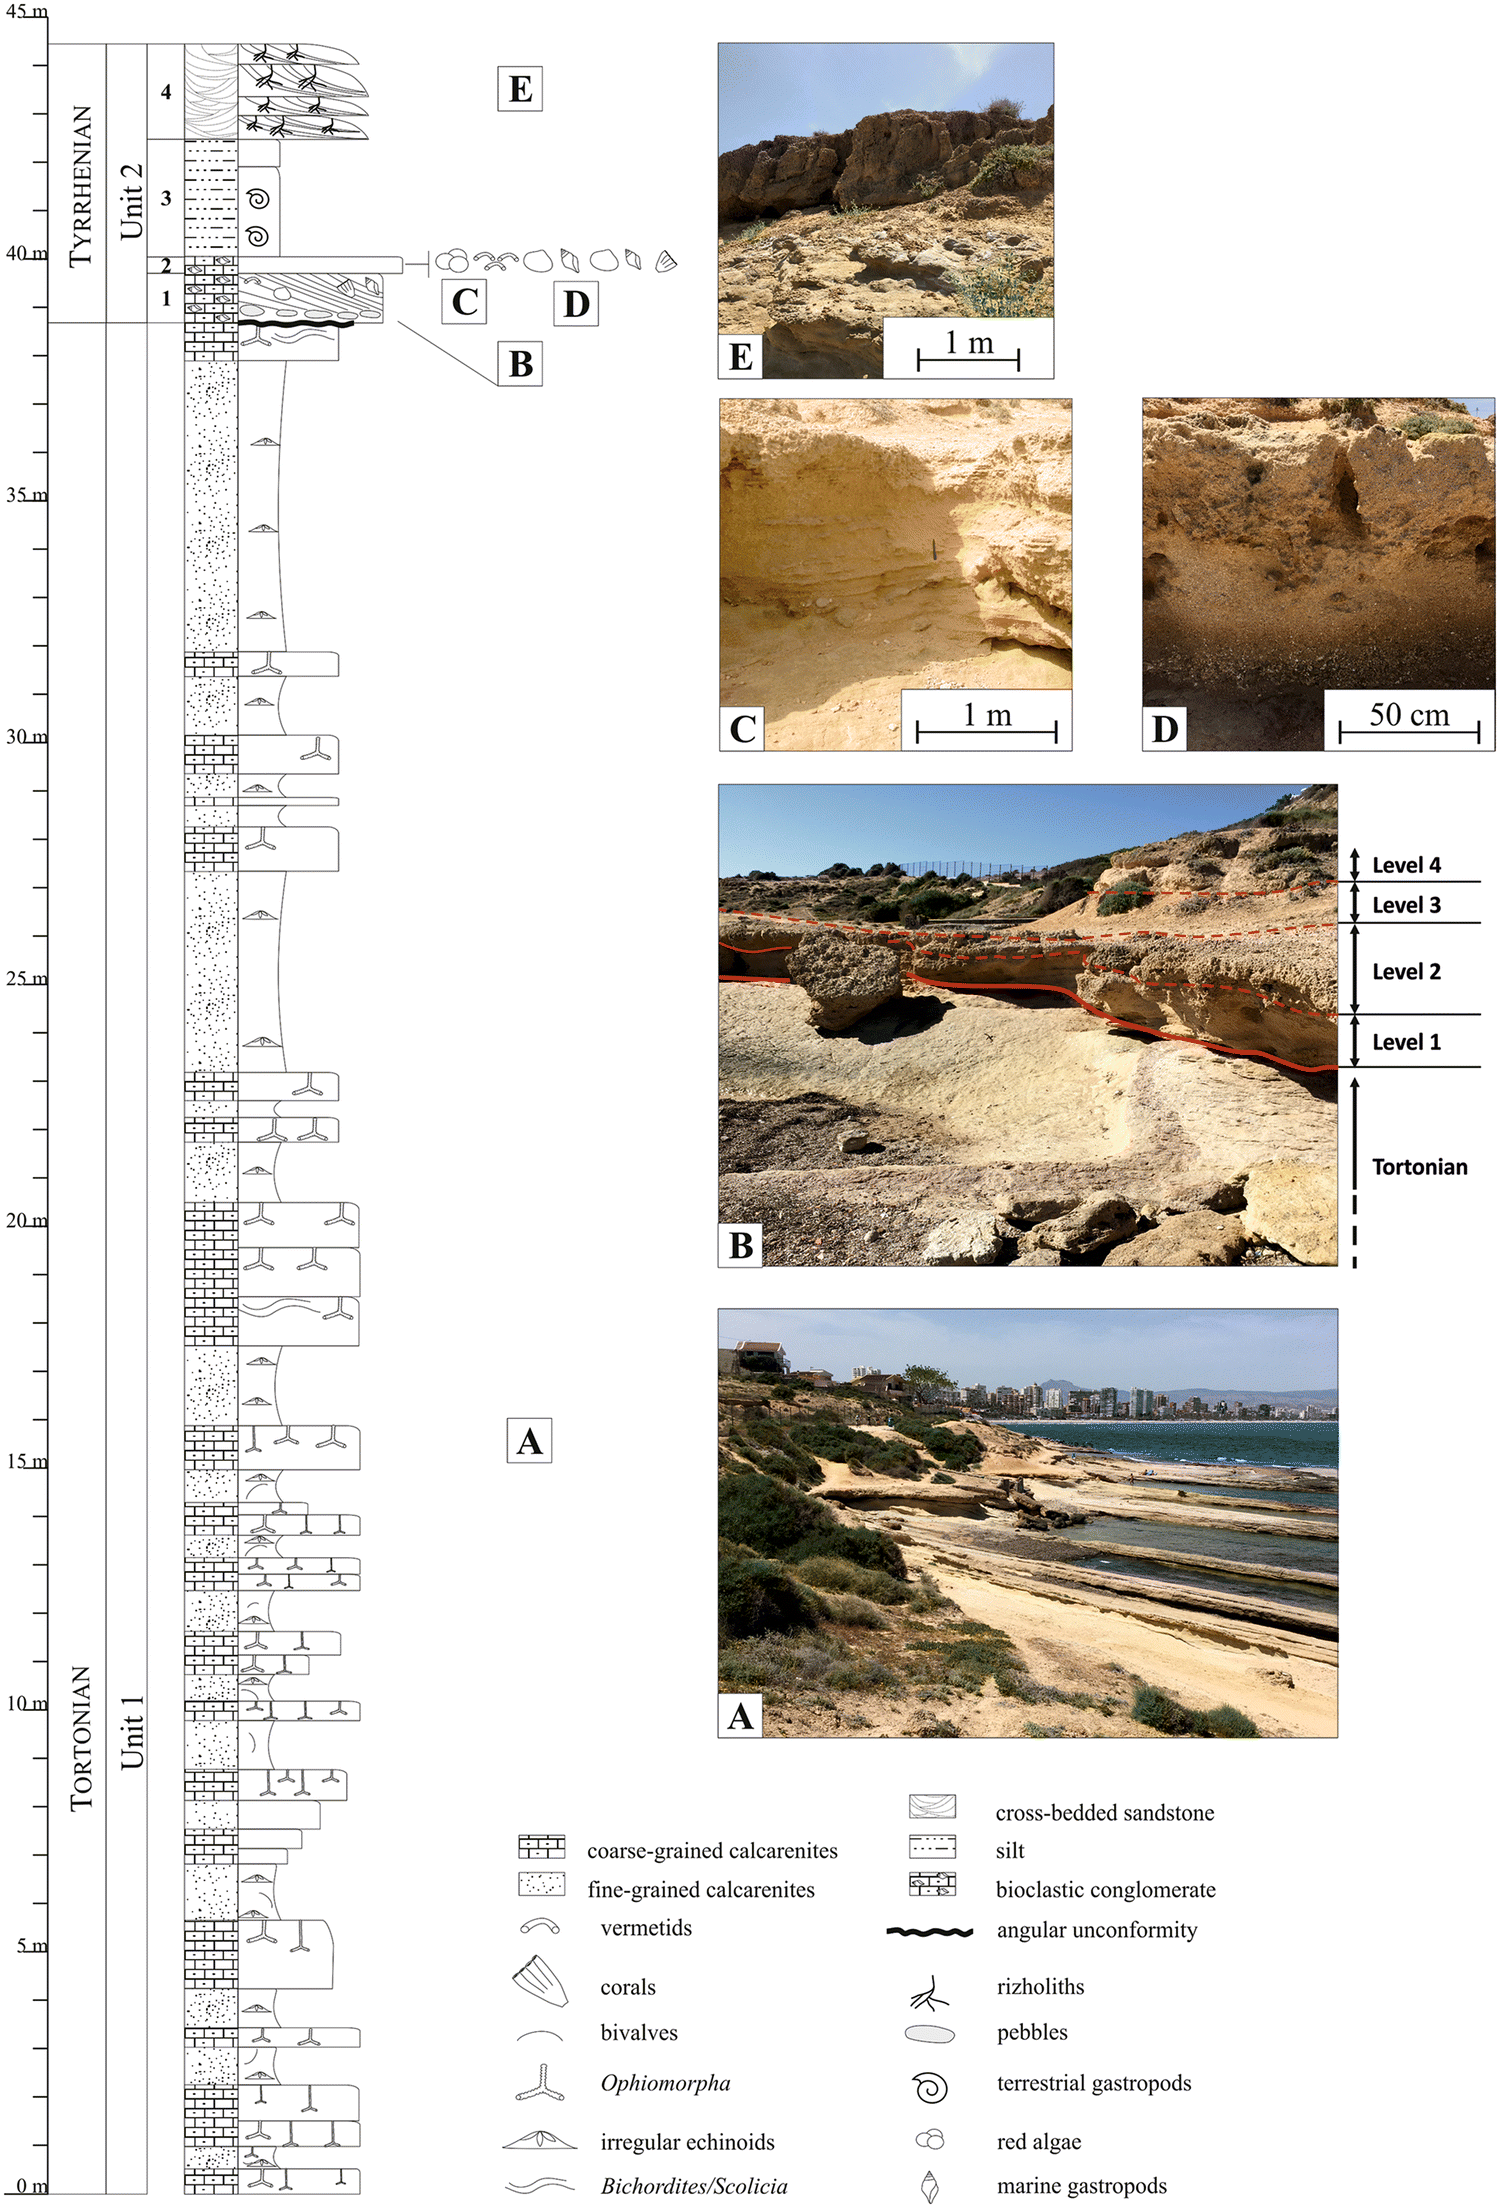 Taphonomy, ichnology, and palaeoecology to distinguish event beds in